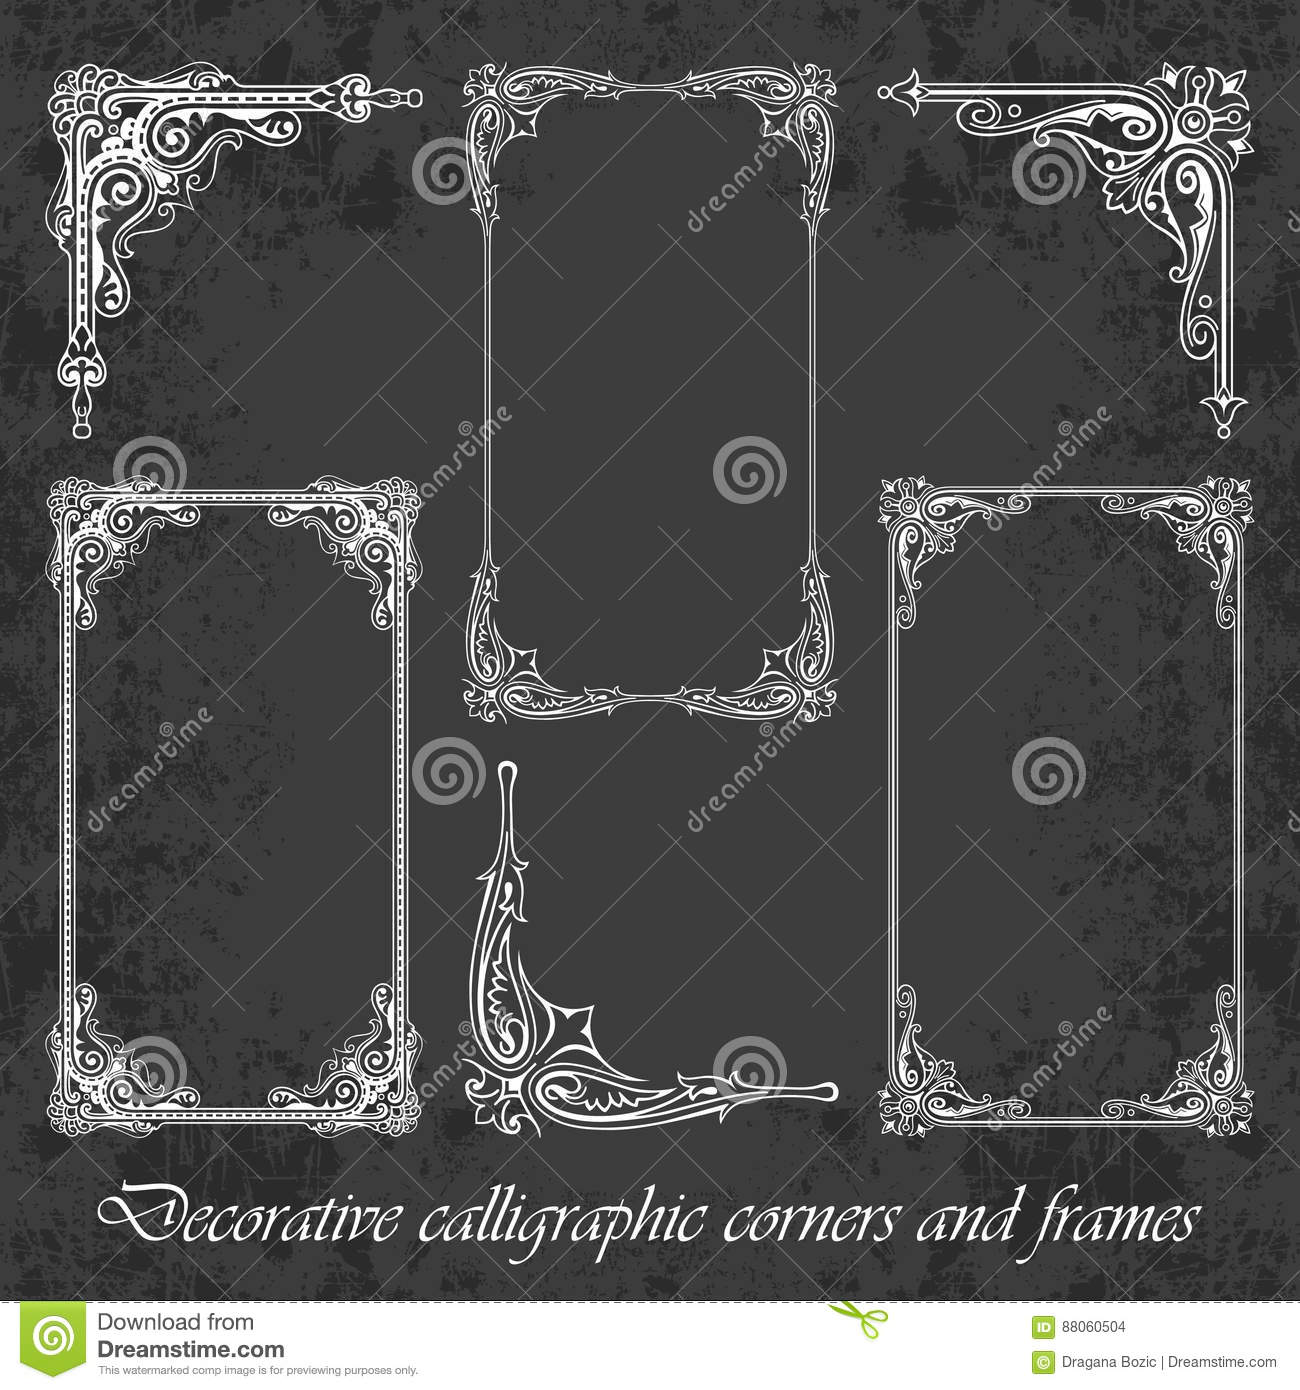 Decorative Calligraphic Corners And Frames On A Chalkboard